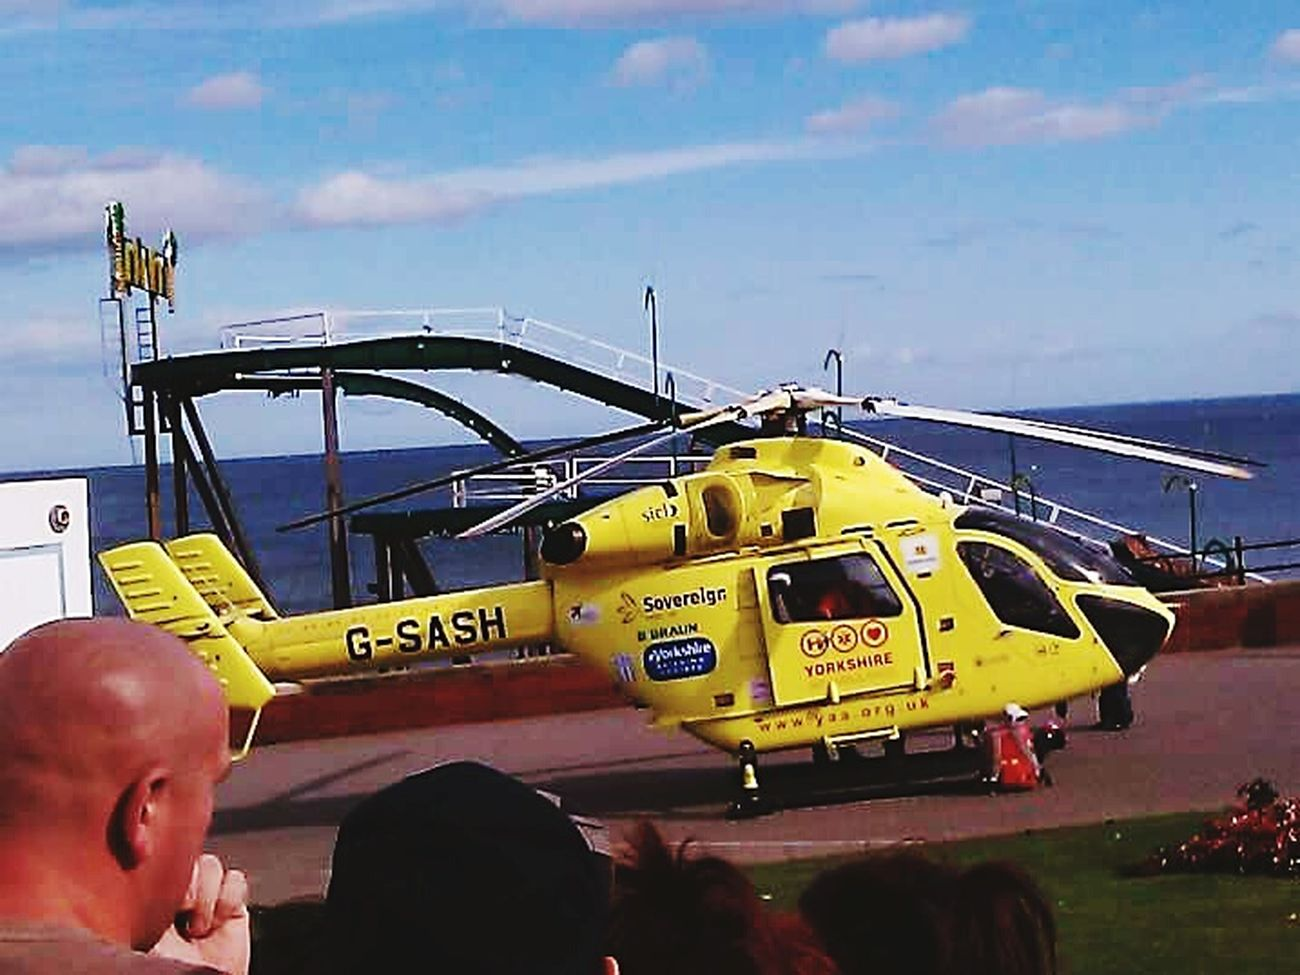 Emergency Emergency Rescue Helping First Aid Helicopters Helicopter Emergency Services Flying RescueLife Rescue